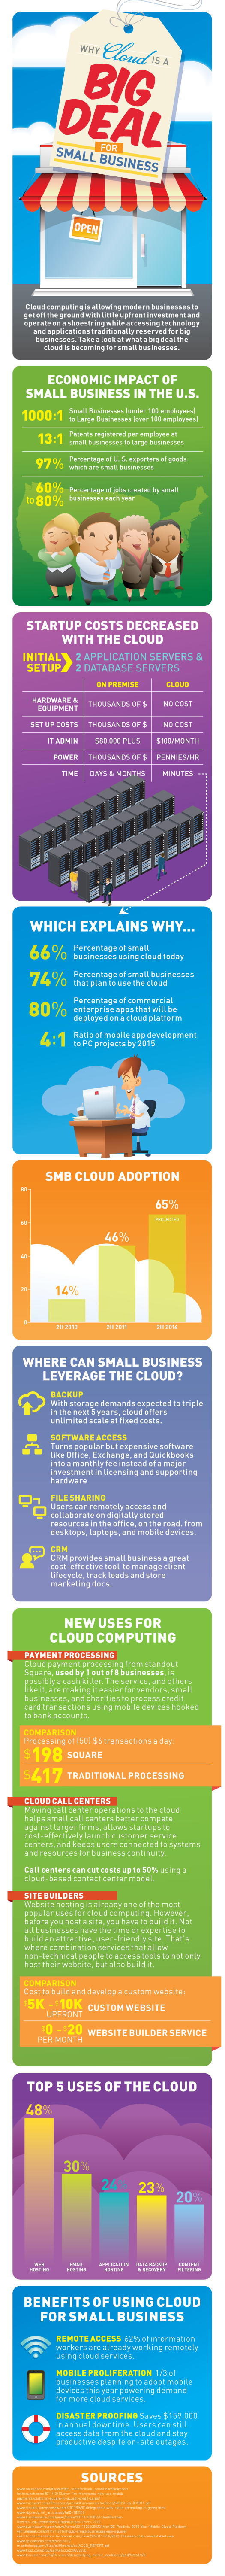 cloud small biz infographic